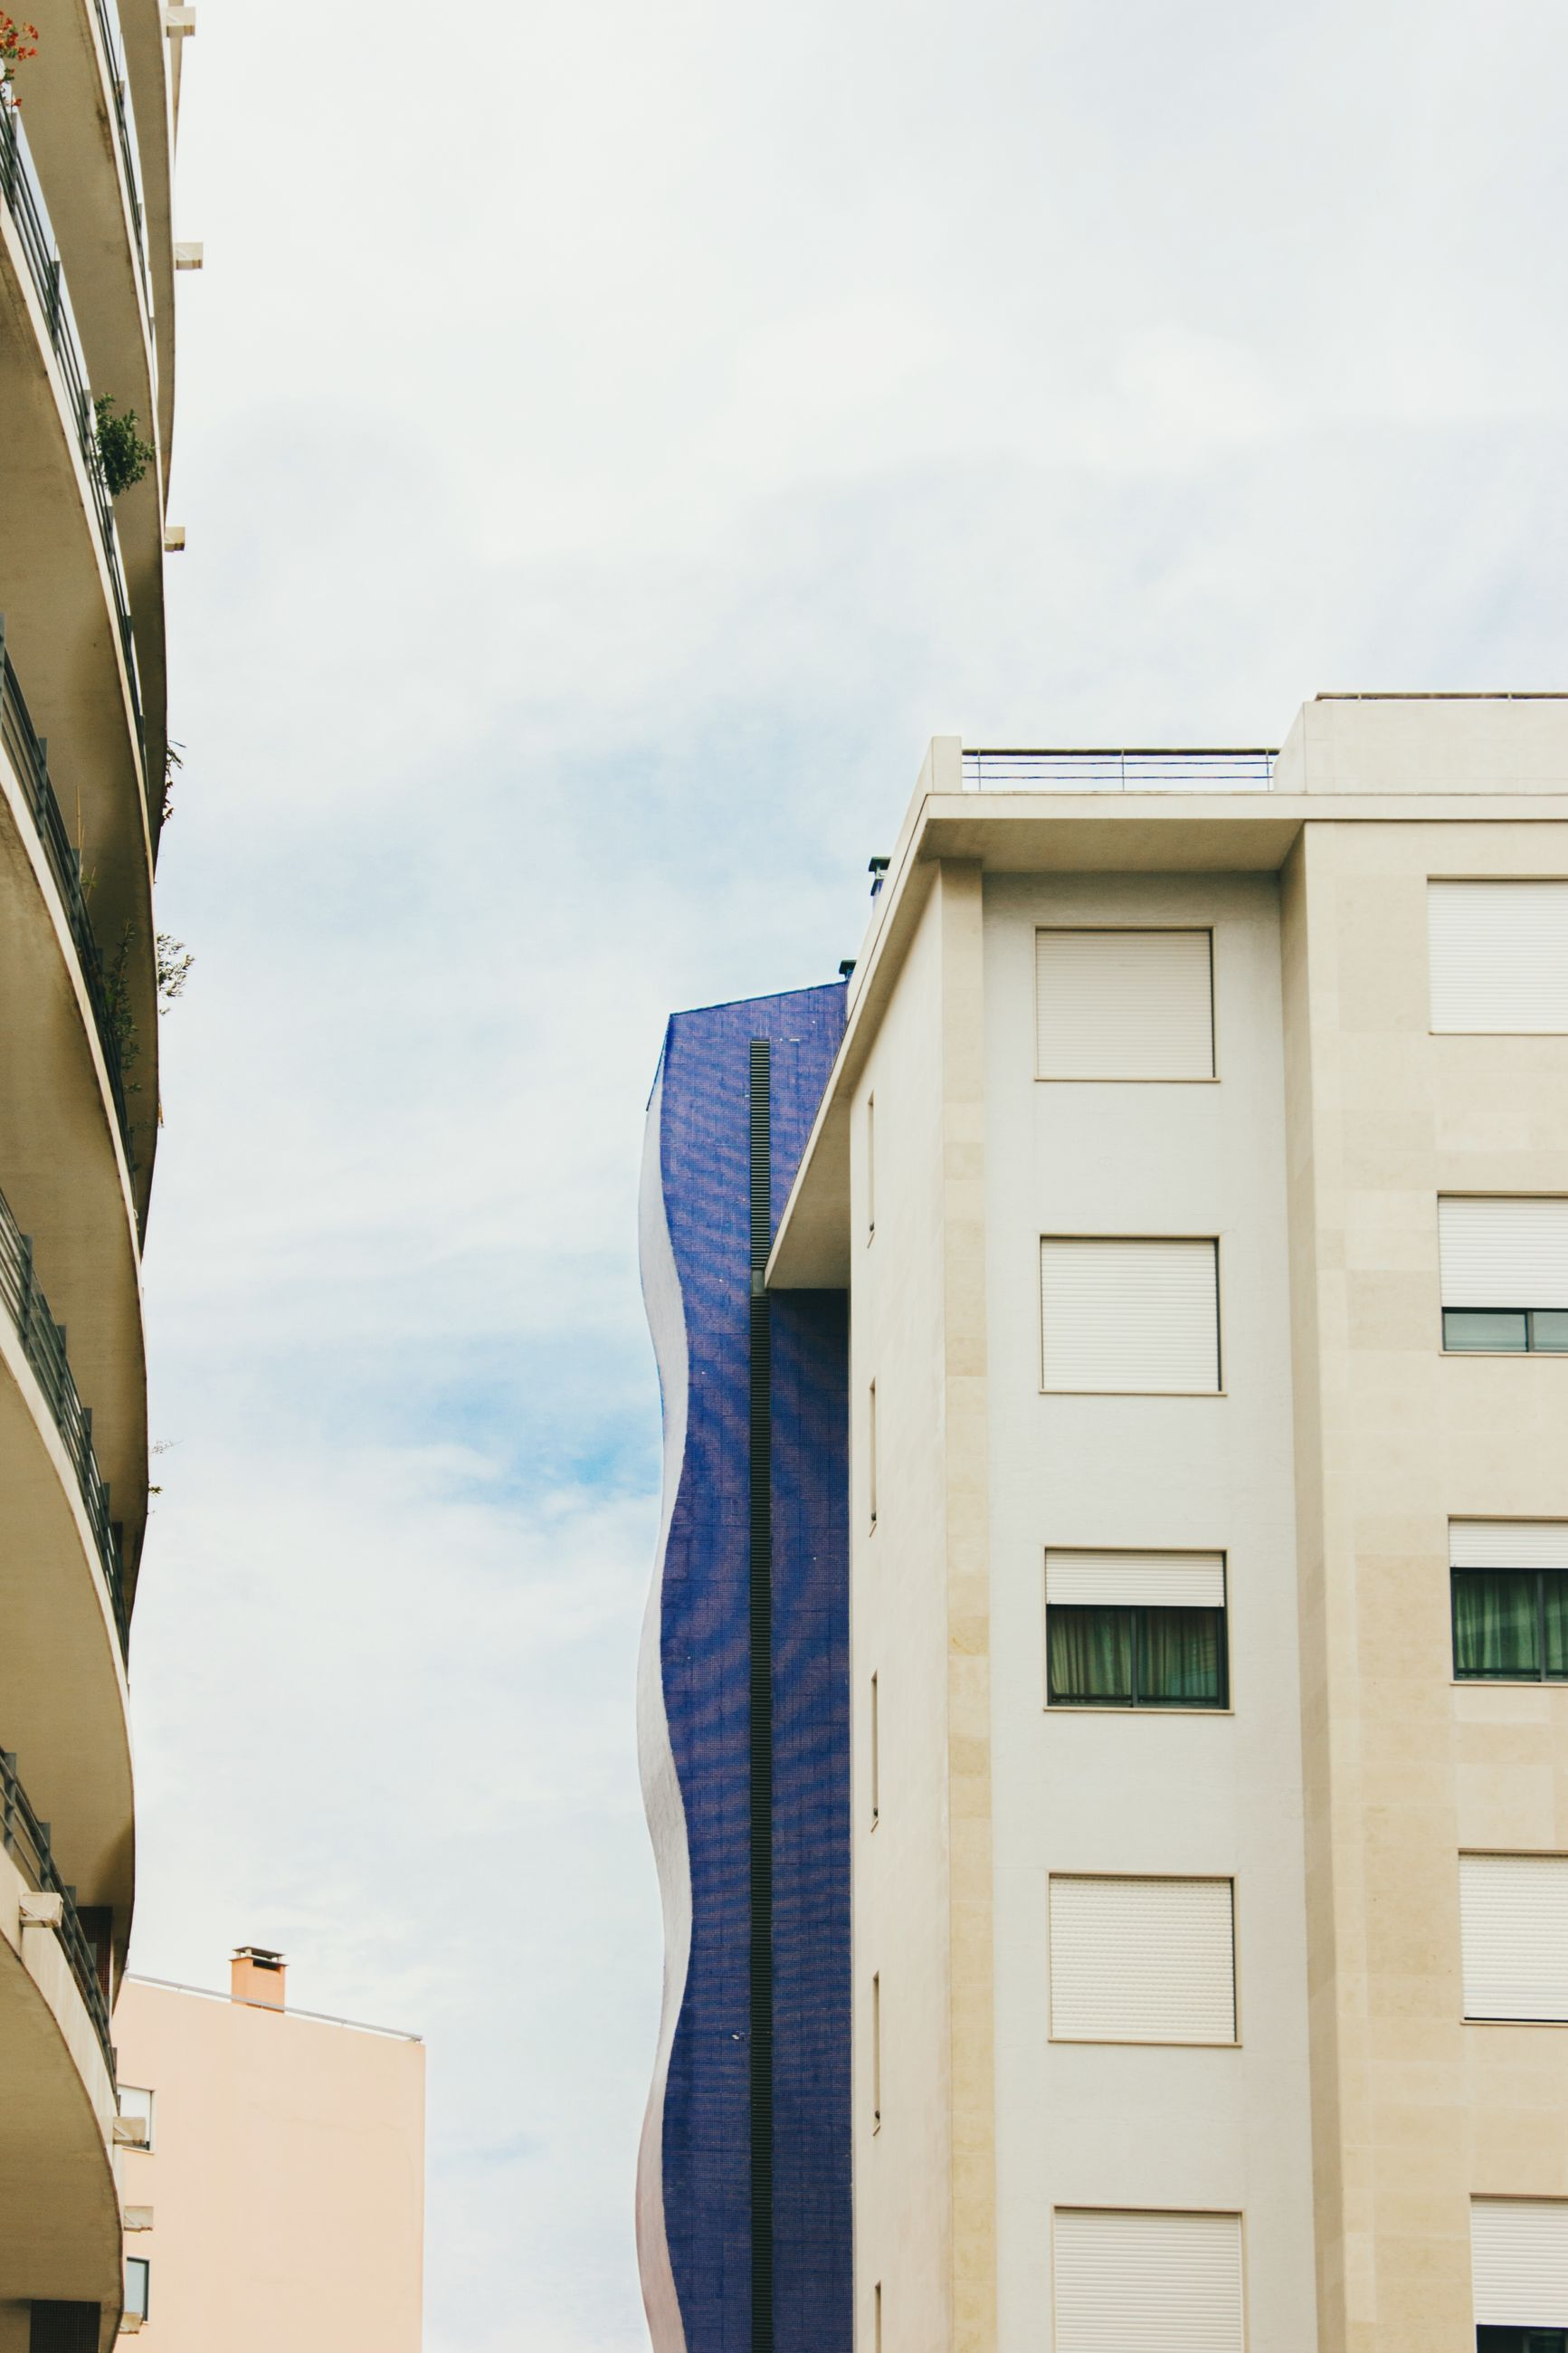 built structure, building exterior, architecture, building, sky, day, cloud - sky, city, window, no people, nature, low angle view, outdoors, residential district, balcony, business, modern, glass - material, technology, apartment